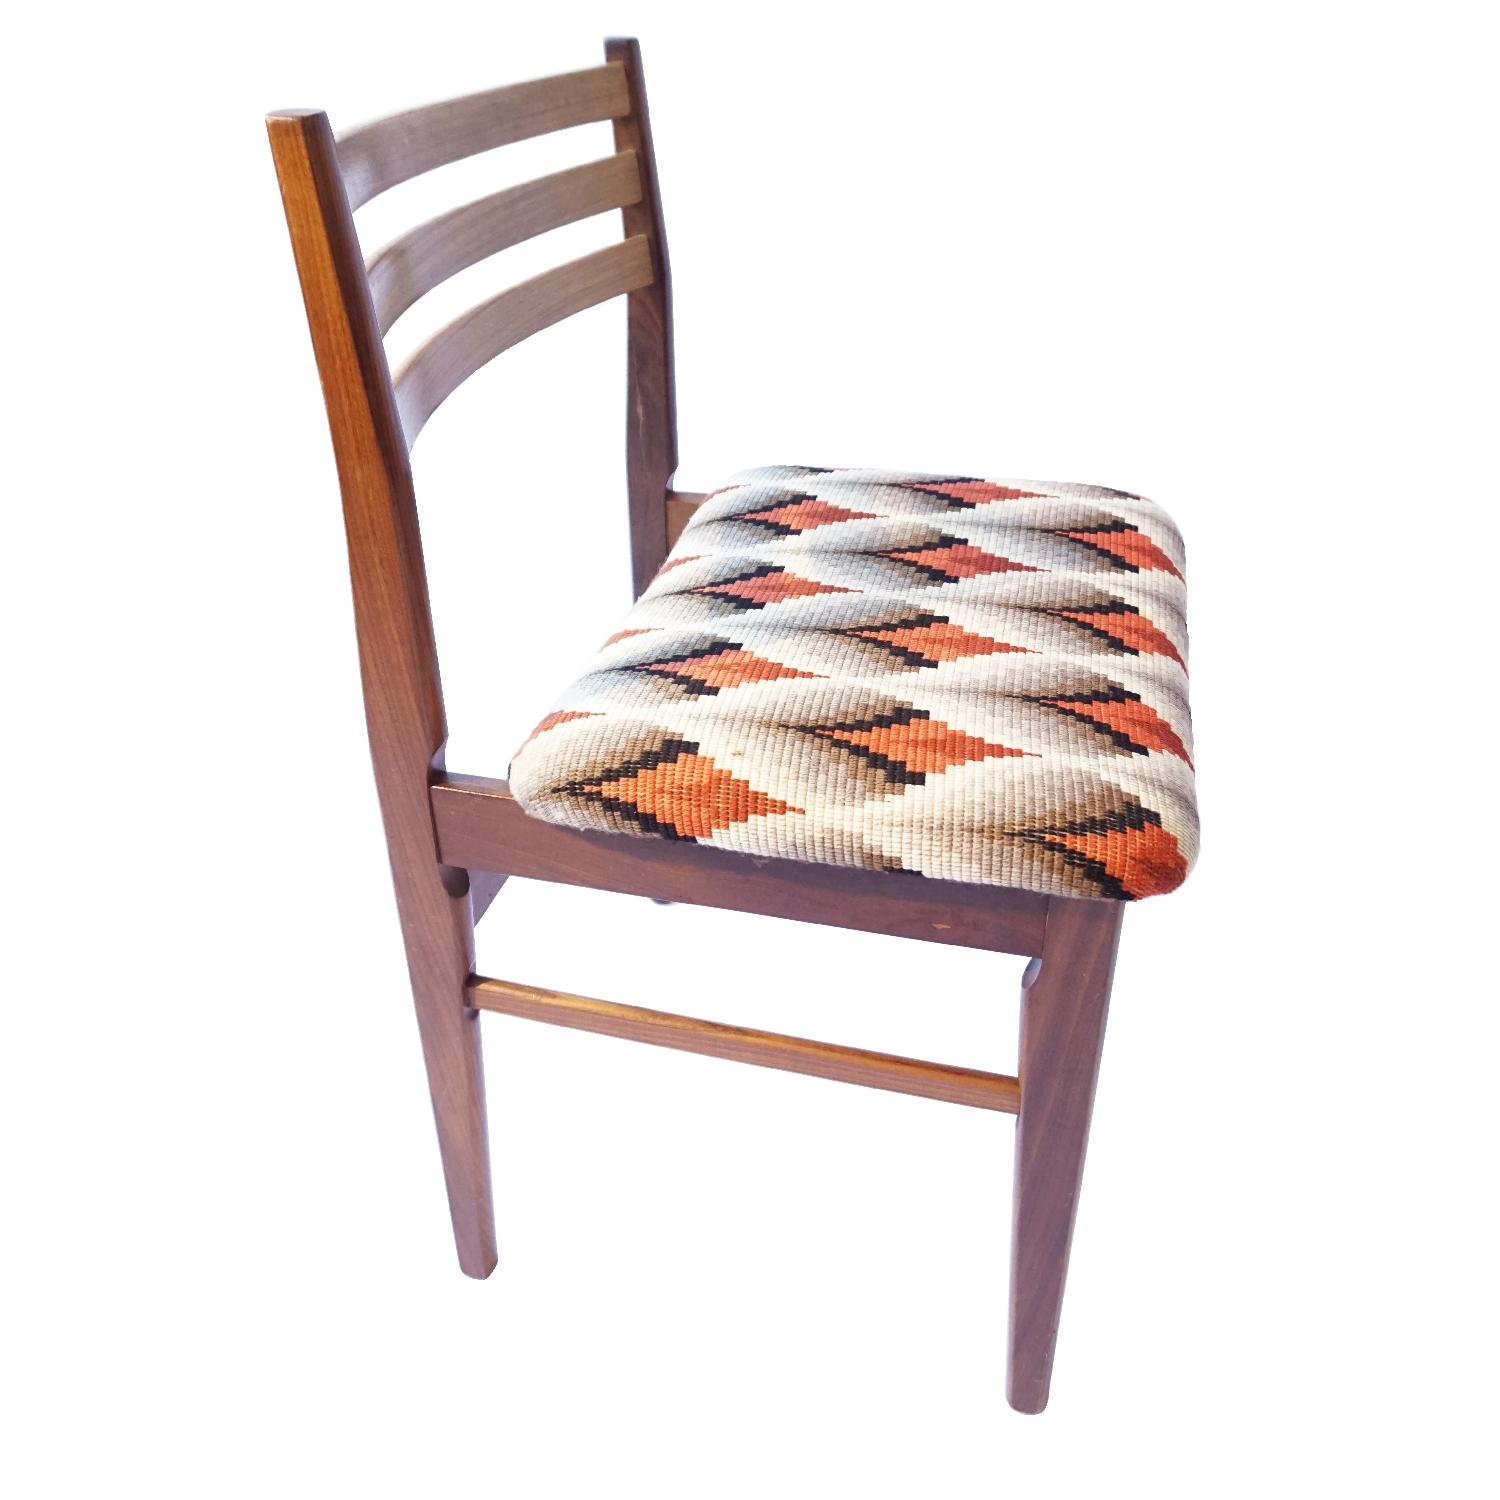 Vintage Danish Furniture Makers Chairs - image-1